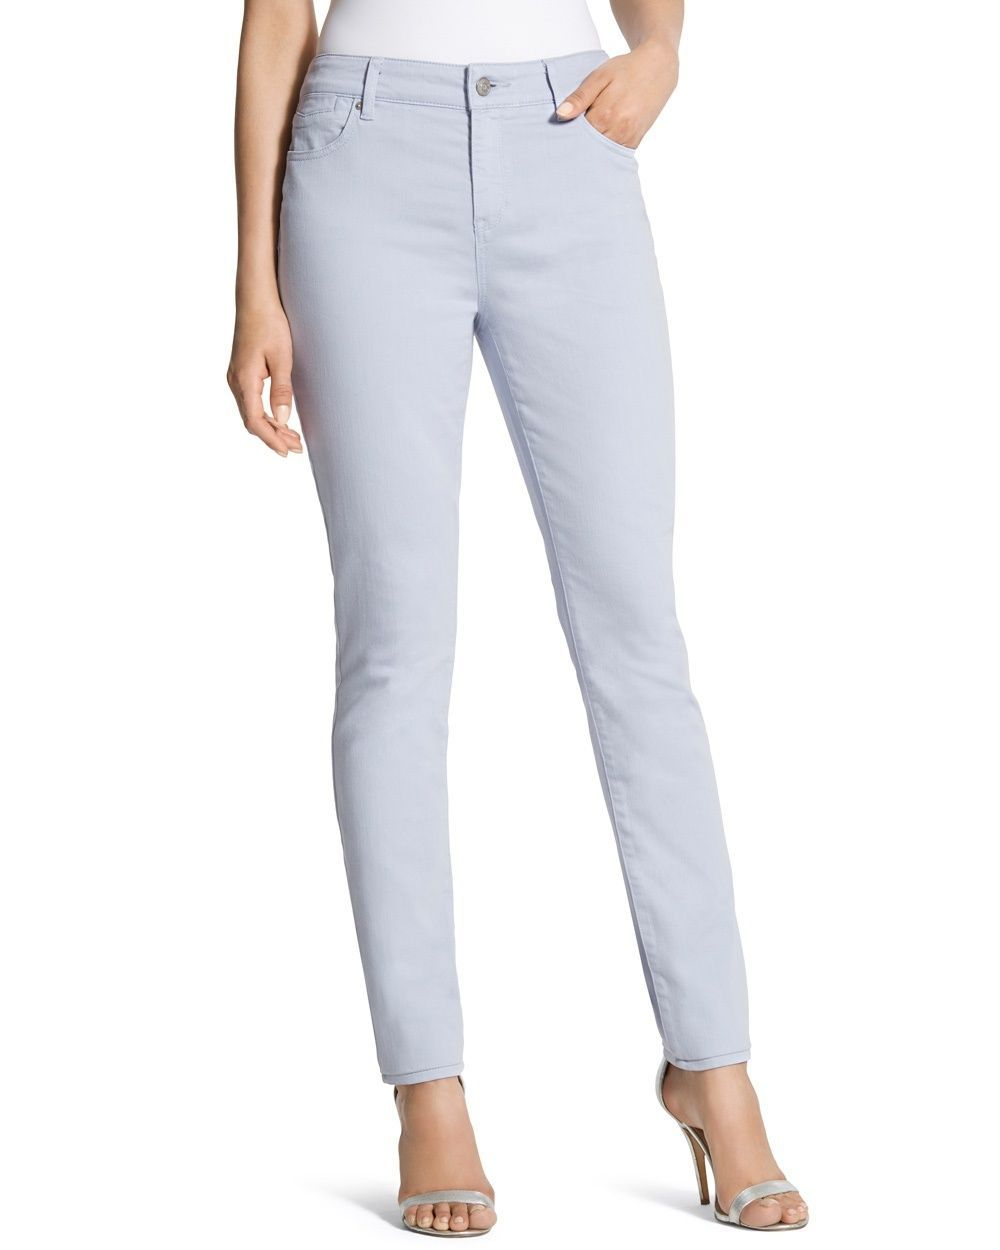 cba822e9a020a Chico's Women's Platinum Denim Jeggings In French Hydrangea